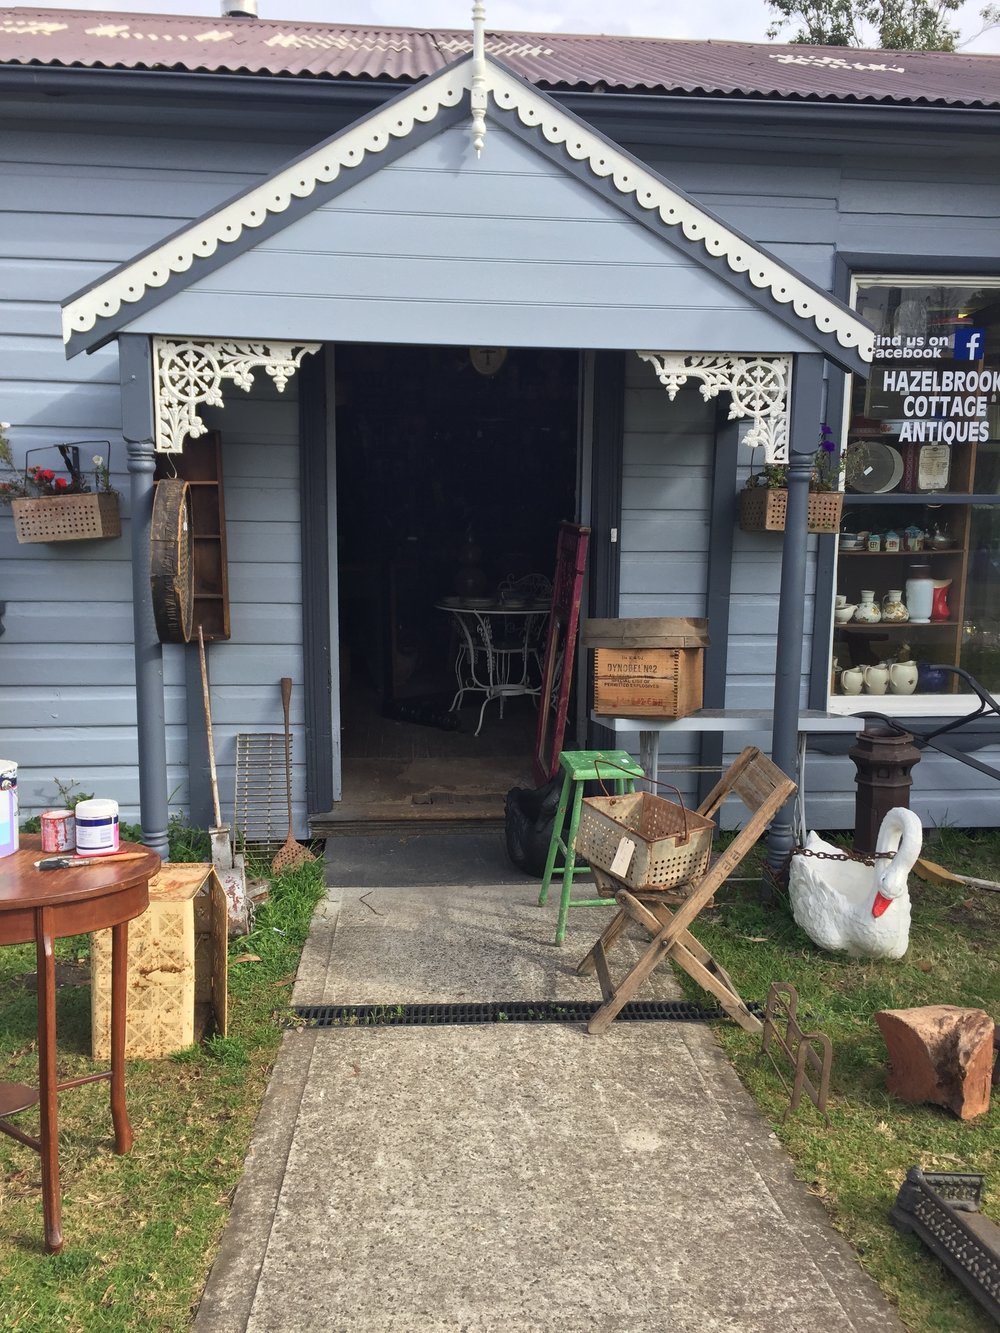 Hazelbrook Cottage Antiques